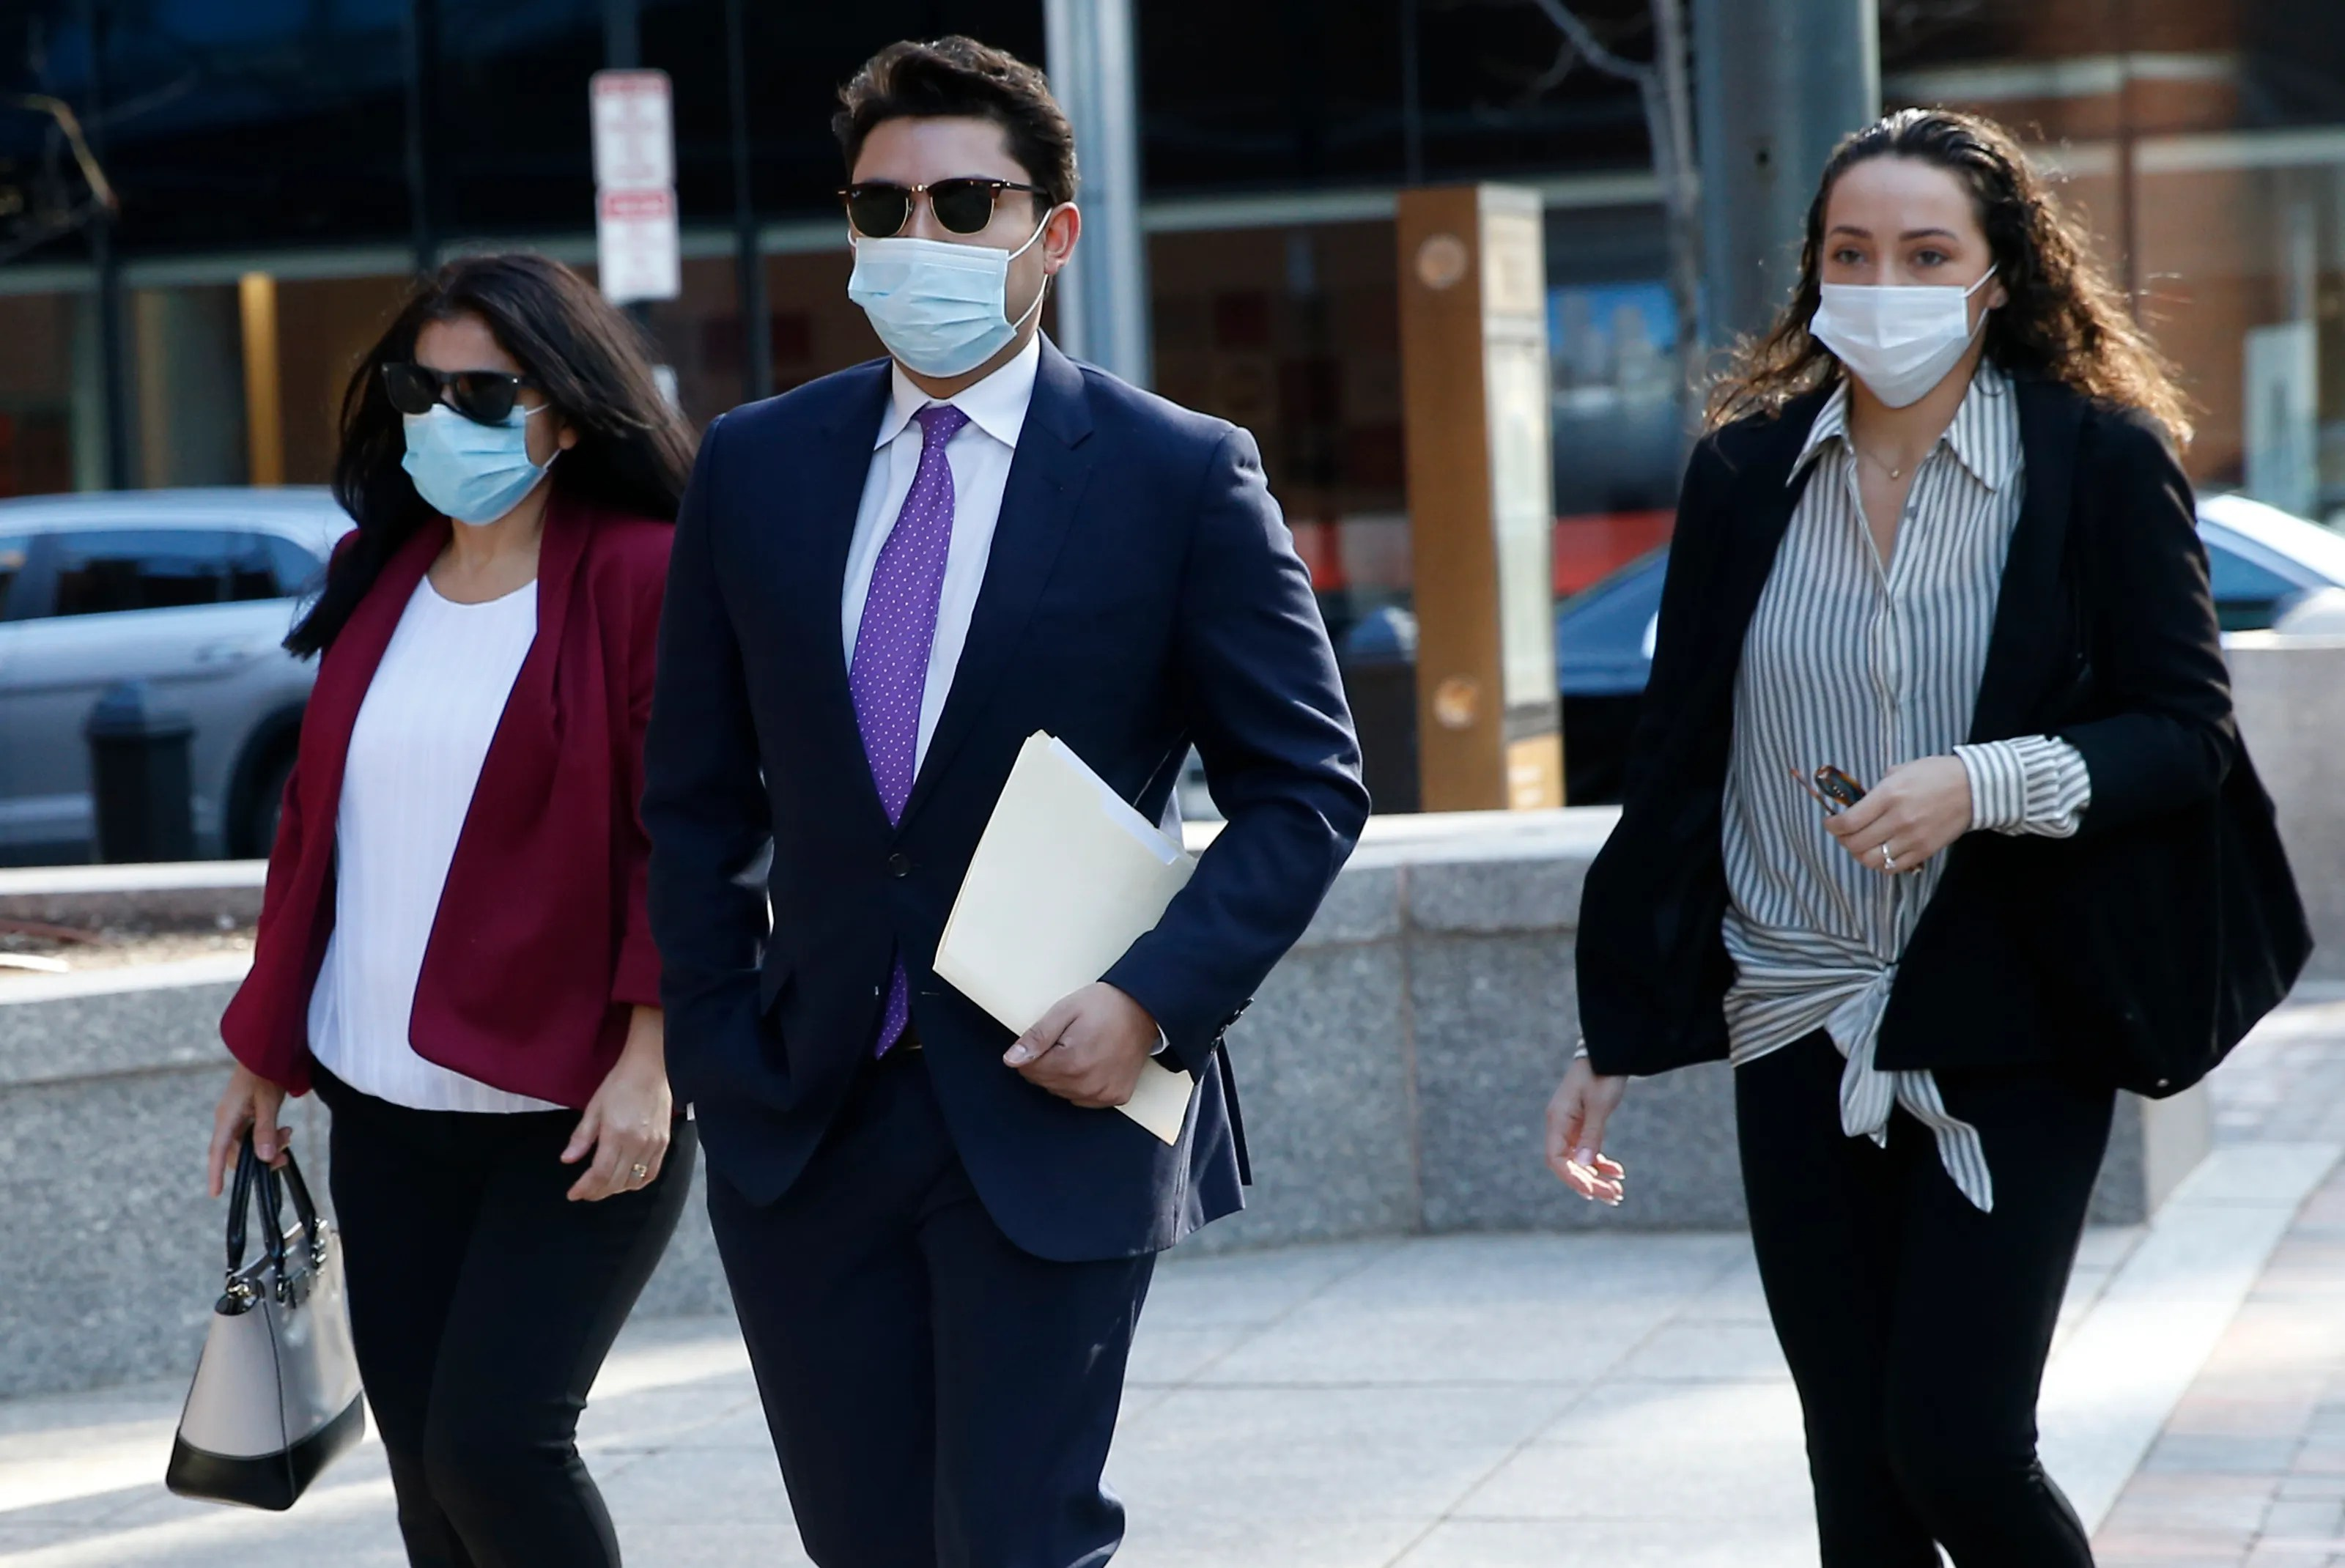 Former Fall River Mayor Jasiel Correia, center, arrives to the John Joseph Moakley United States Courthouse, Monday, April 26, 2021, in Boston. Opening statements in Correia's federal corruption trial began Monday.